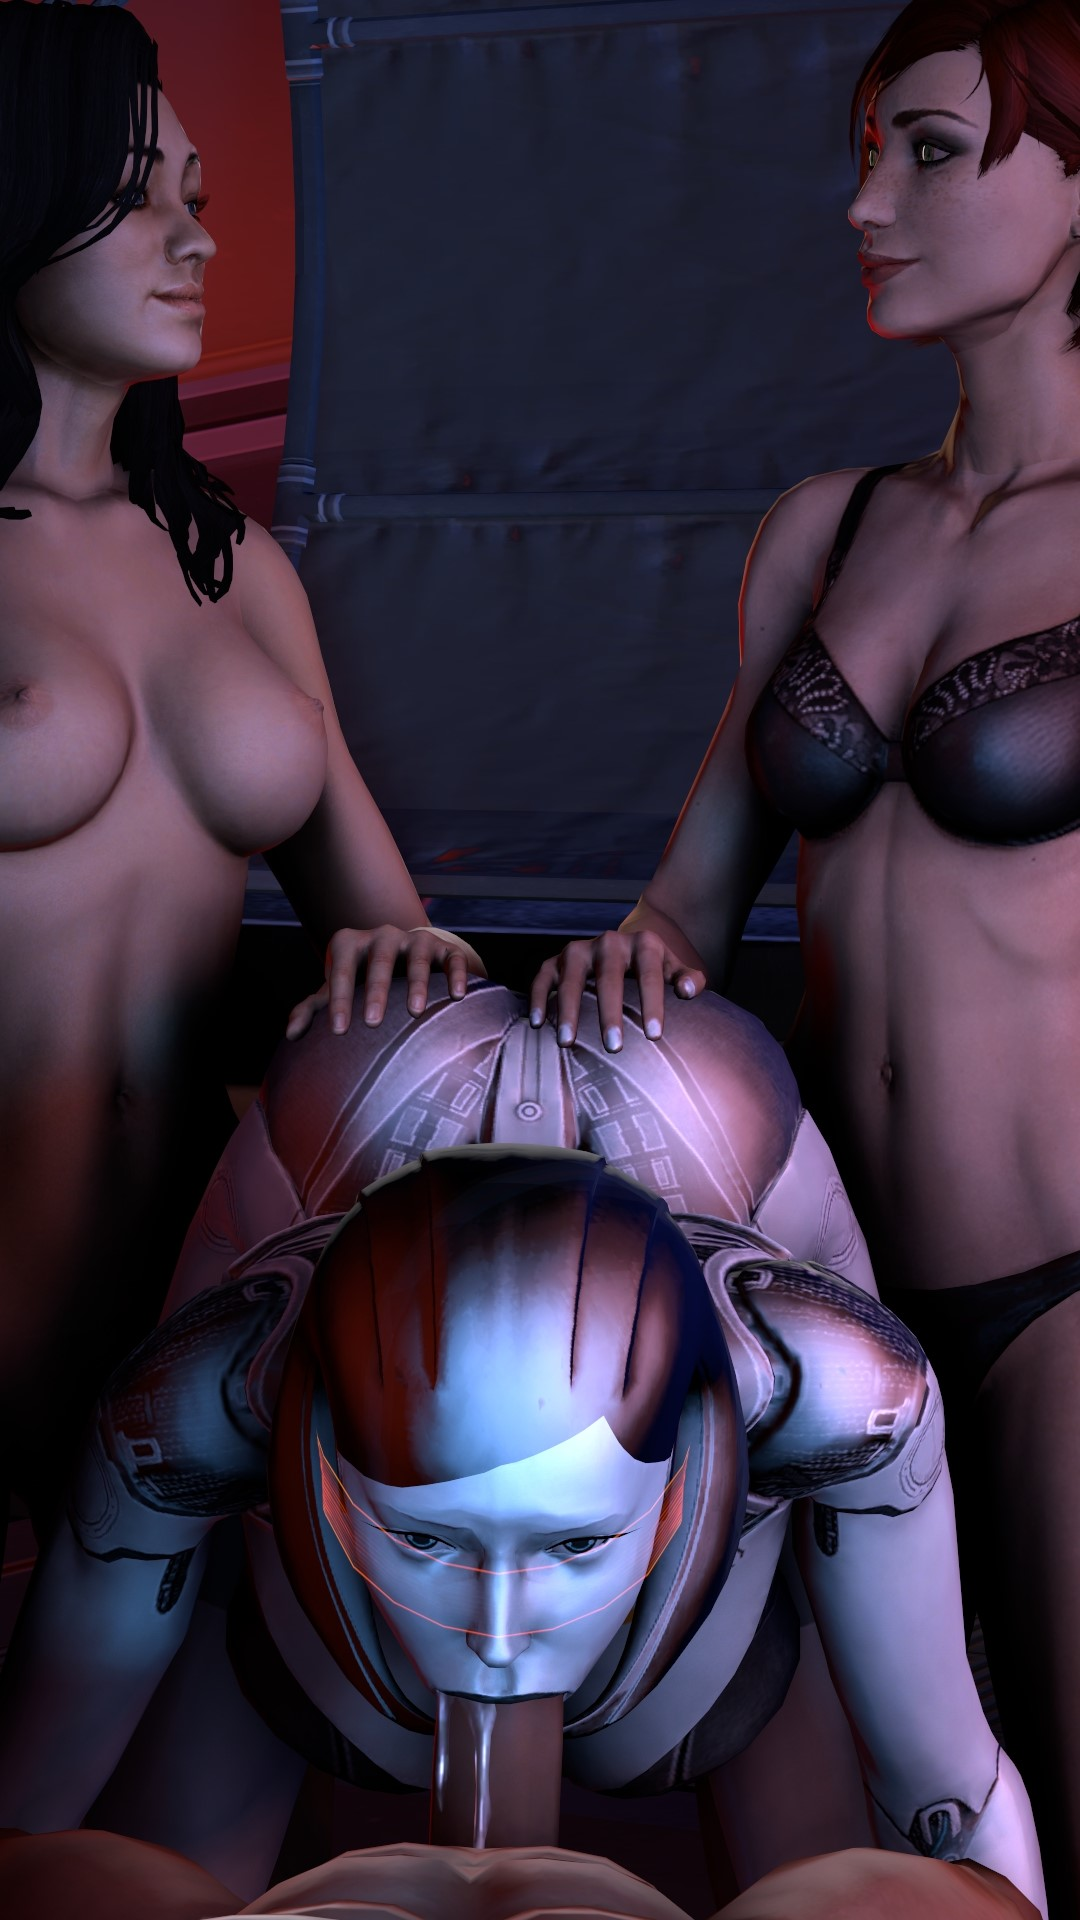 Asai fuced in mass effect 3 hentai porn tubes